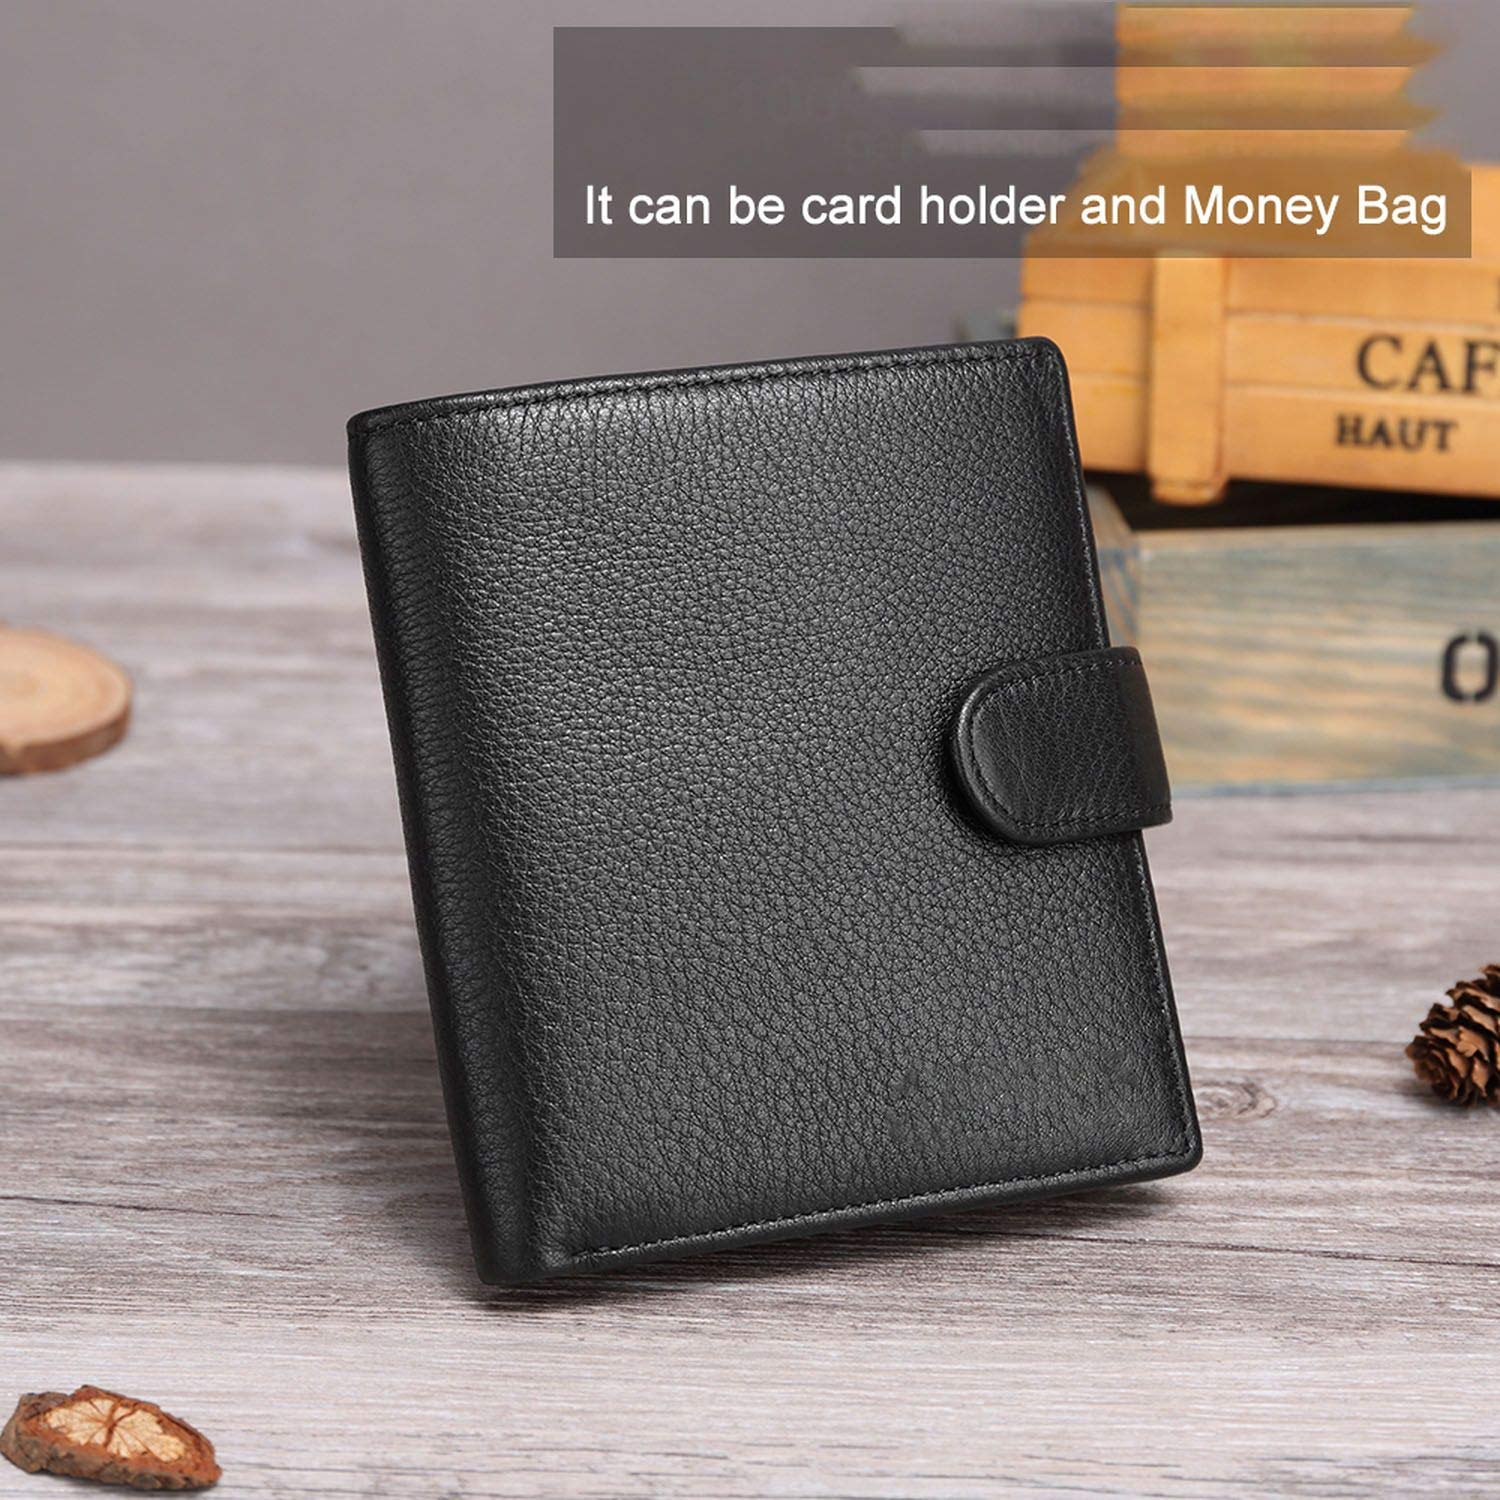 Leather Men Wallet Fashion Coin Purse Card Holder Wallets Male Clutch Purses for Money,Black